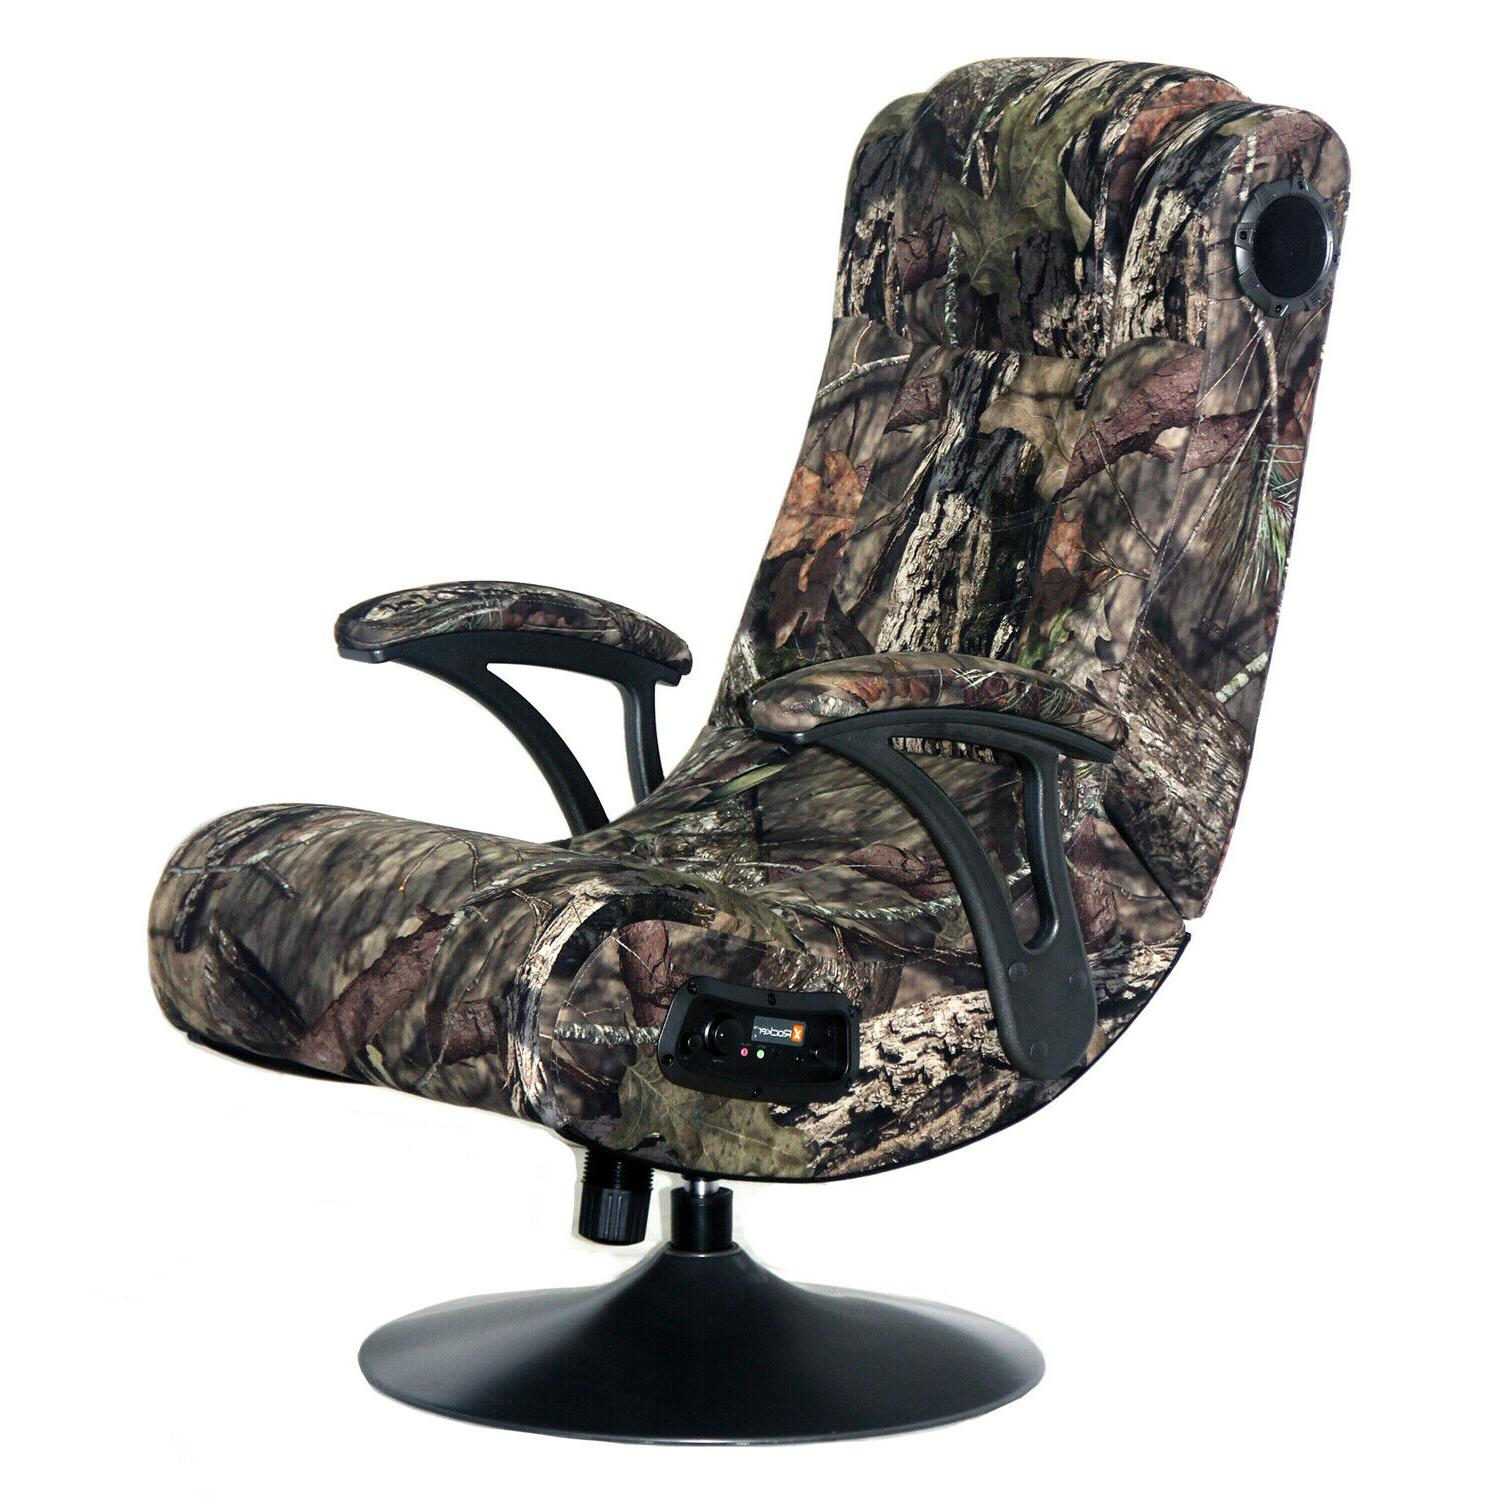 Pro Wireless Bluetooth Video Gaming Chair with Speakers Home